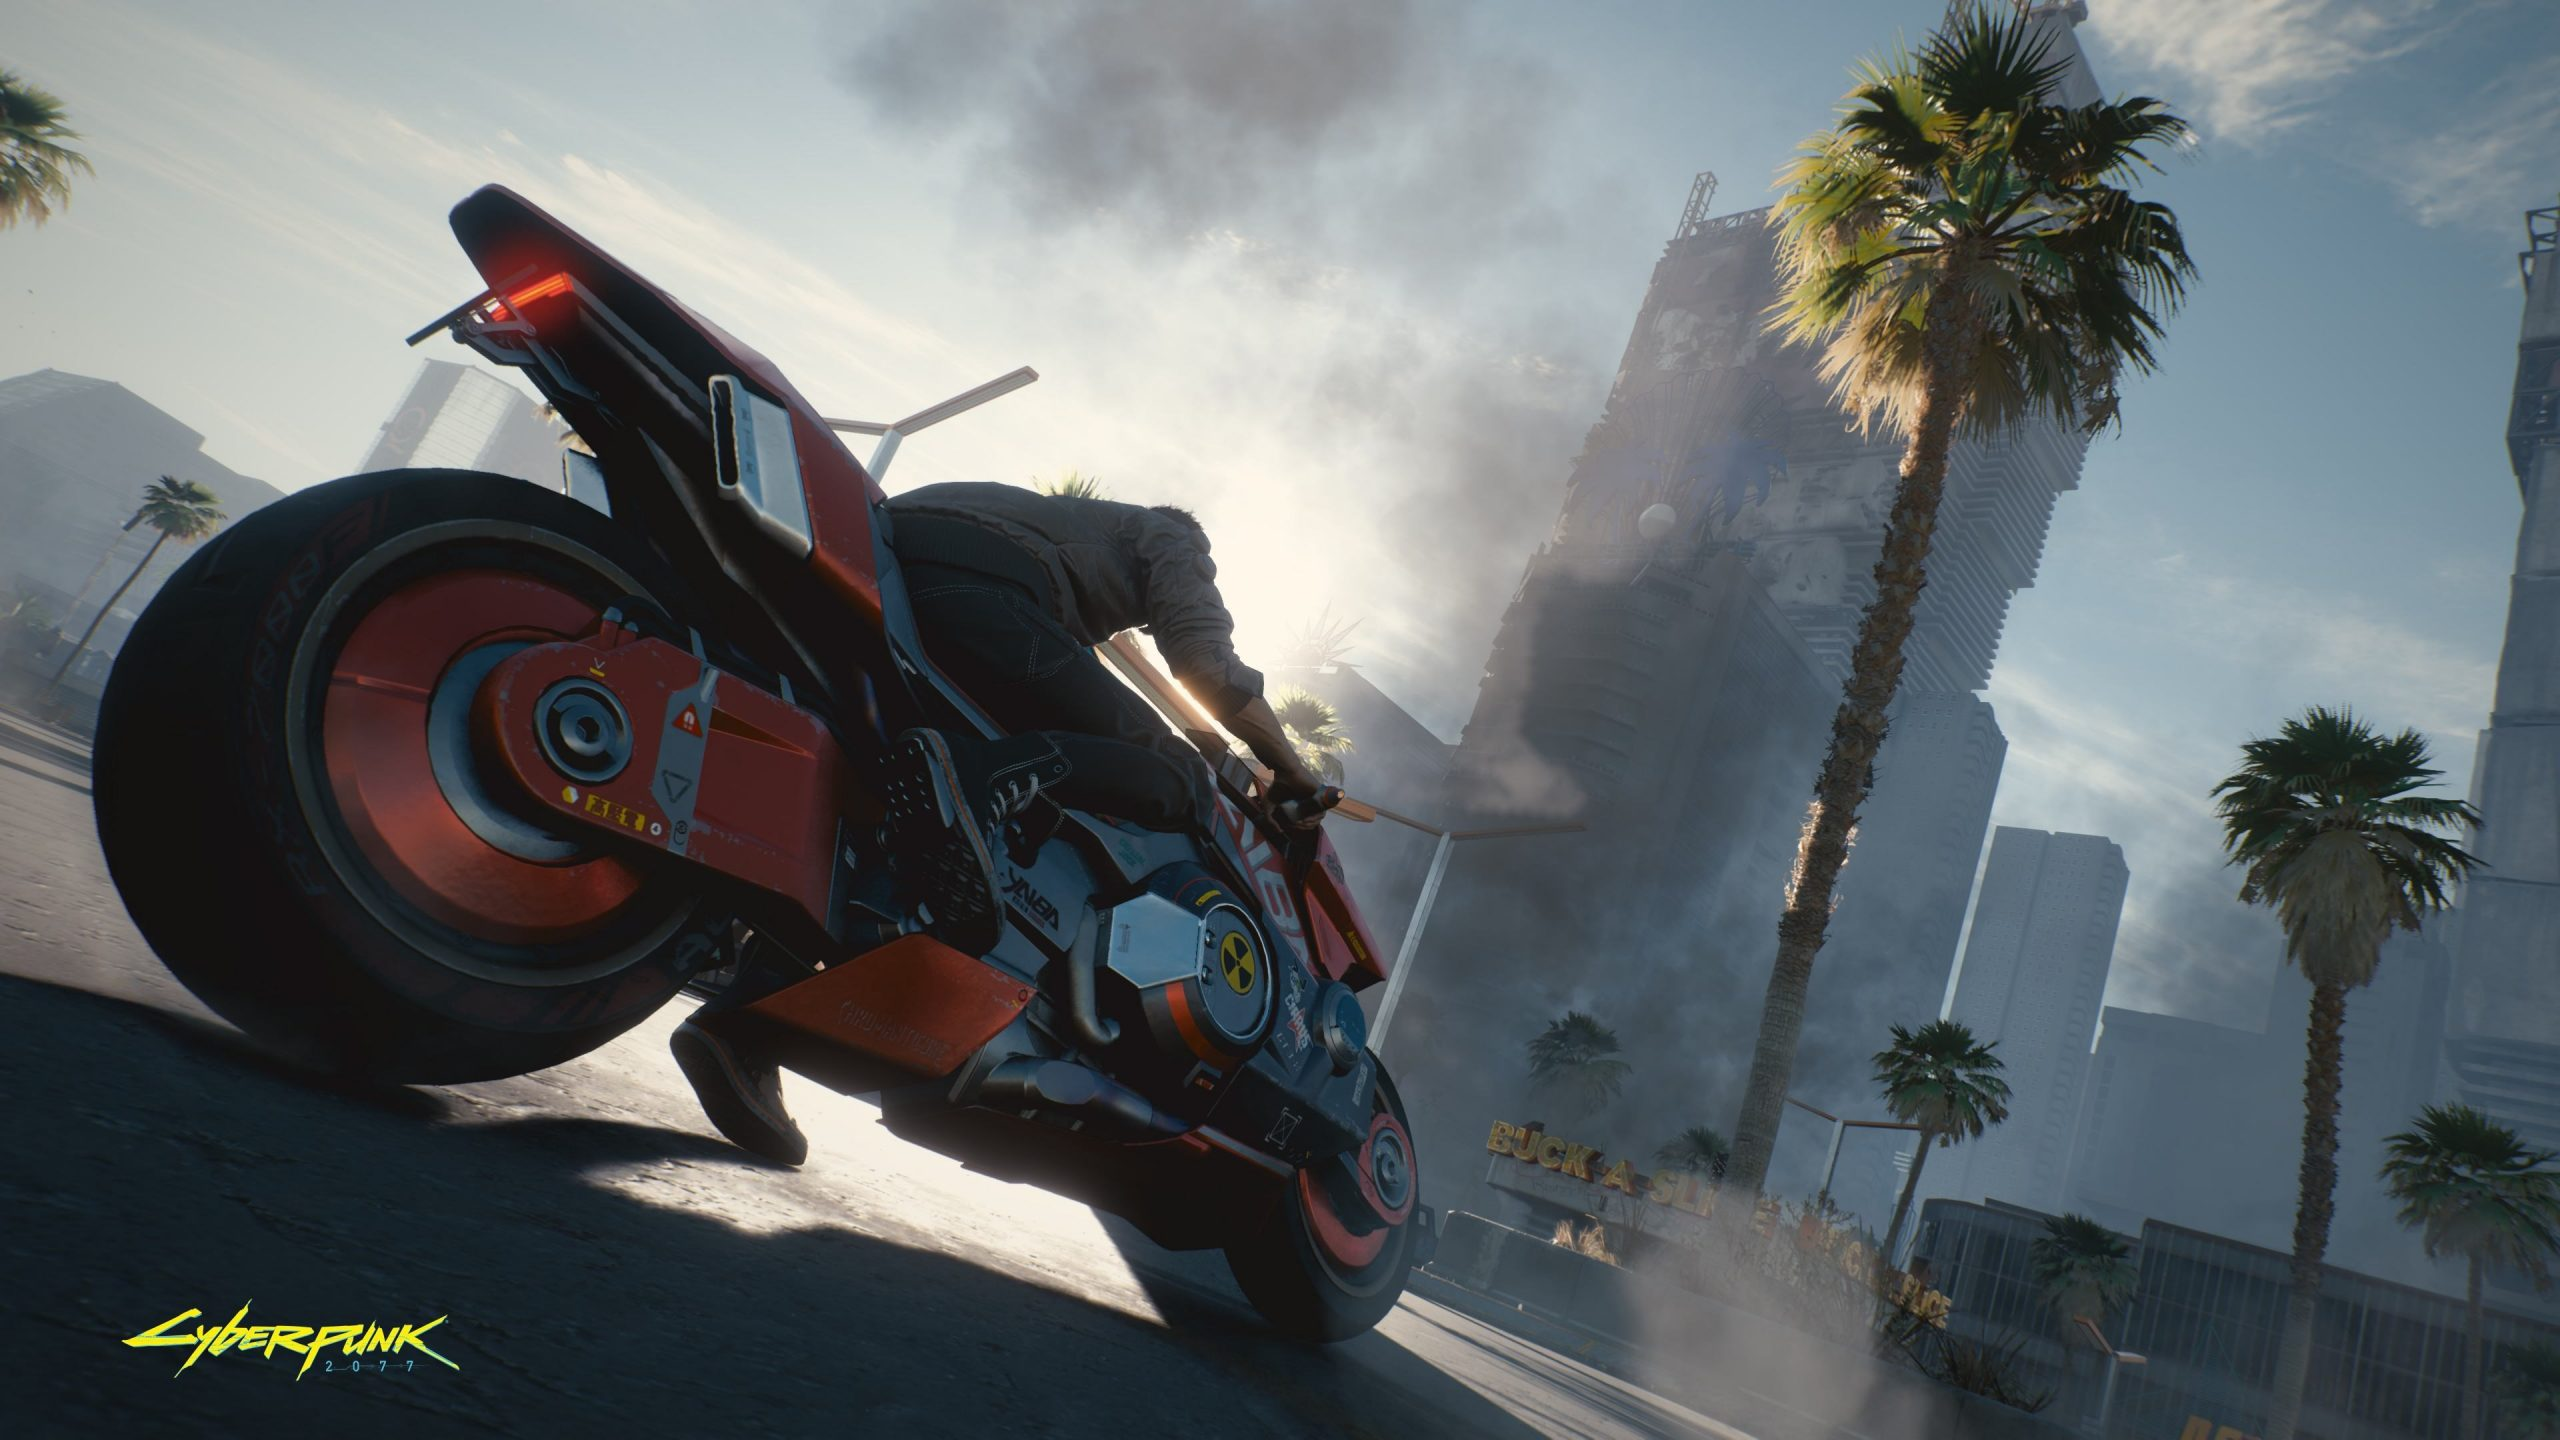 Cyberpunk 2077 Pictures scaled